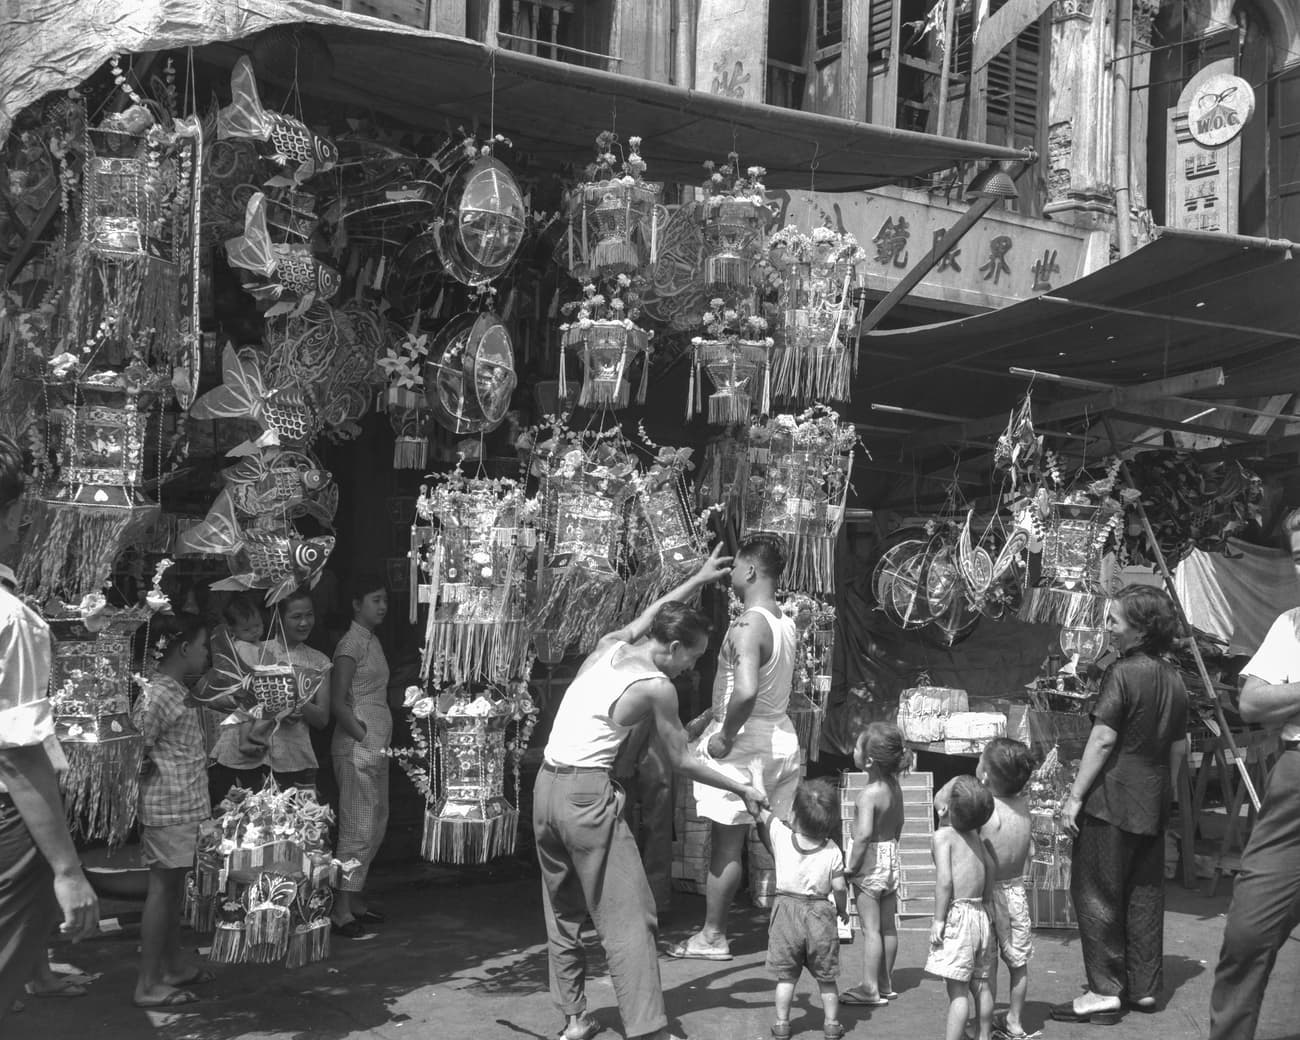 Stall selling lanterns for the Mid-Autumn Festival, 1954